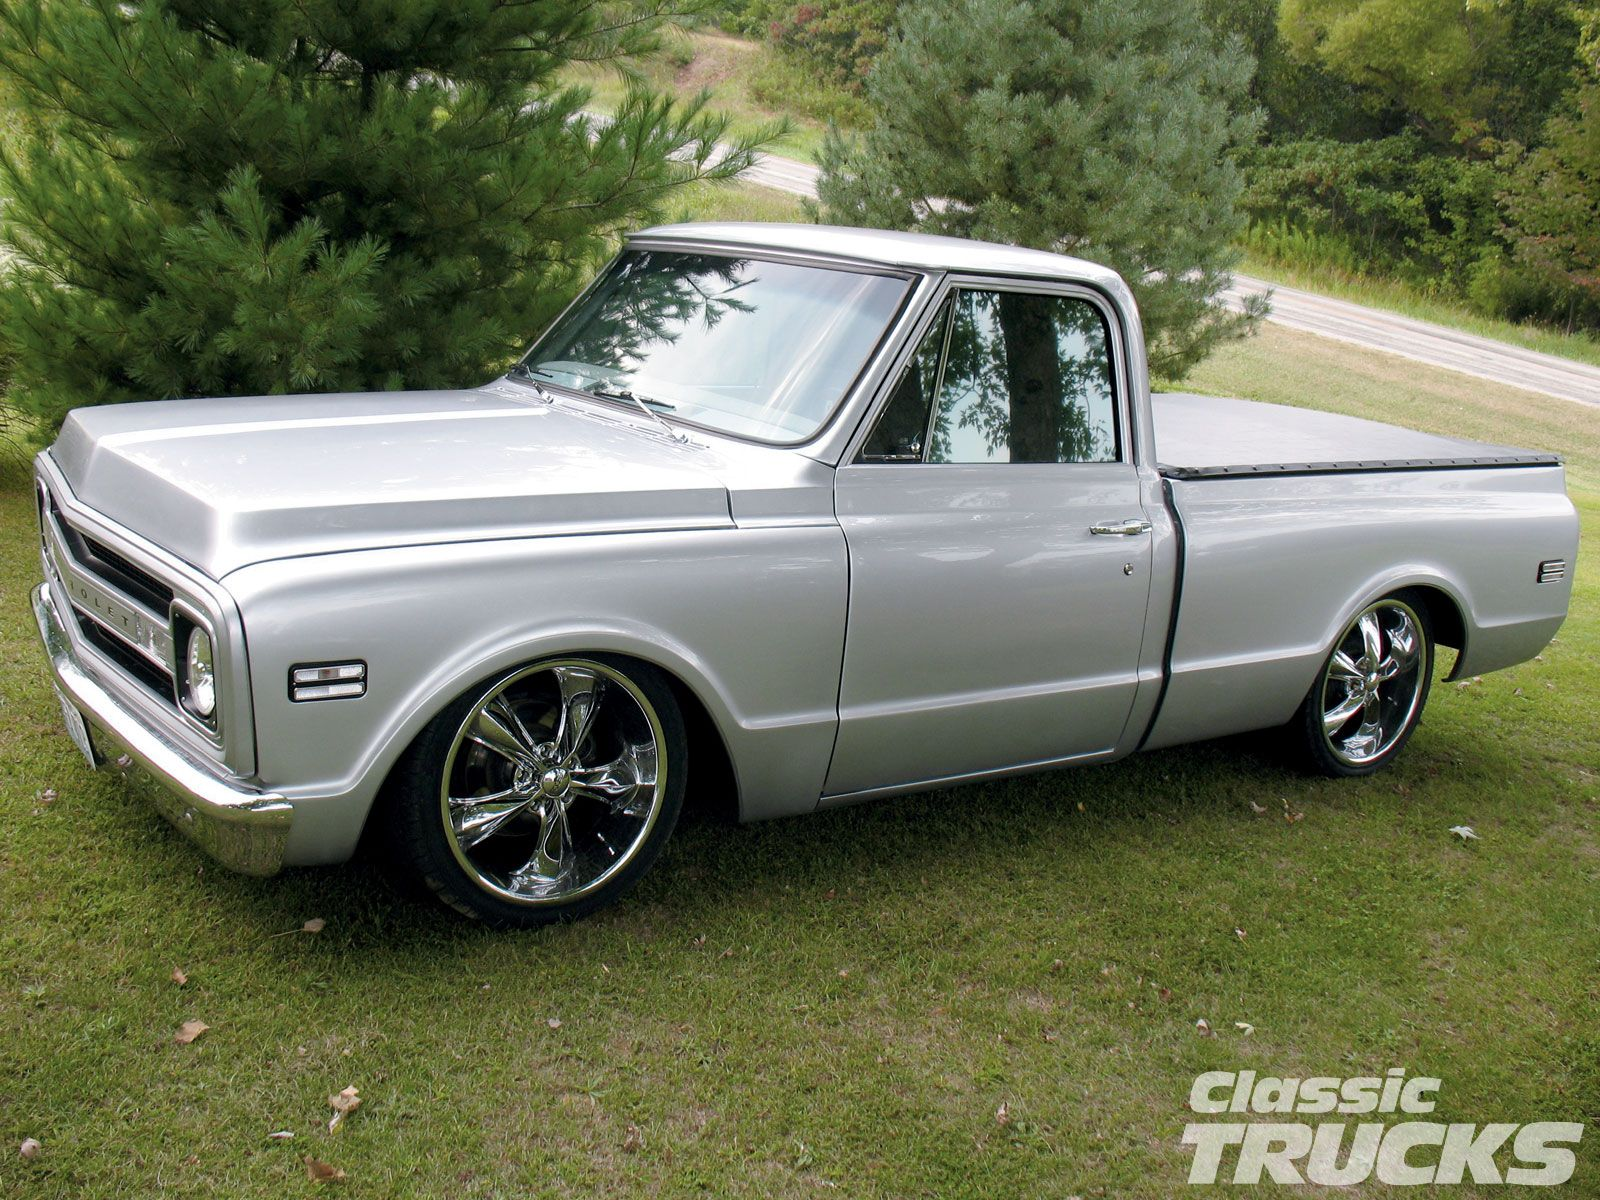 My Truck I Want A 1969 Chevy C10 Pickup Sweet Lookin One With